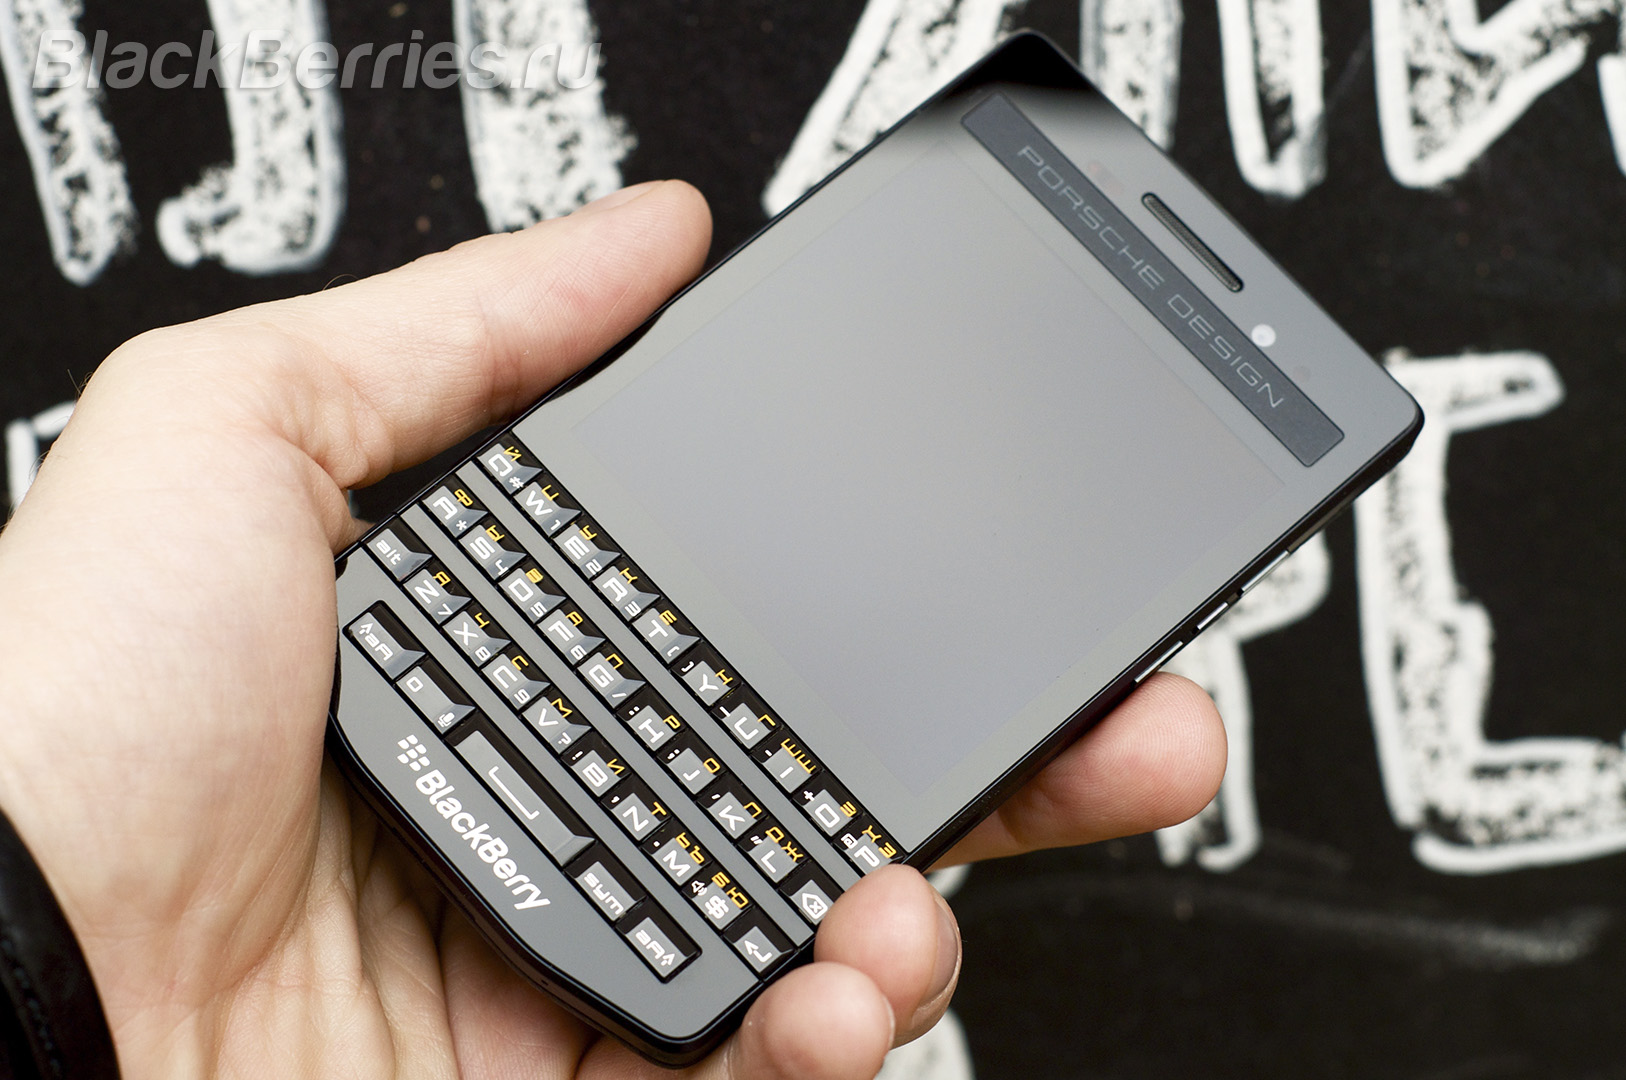 BlackBerry-P9983-Graphite-RUS-7